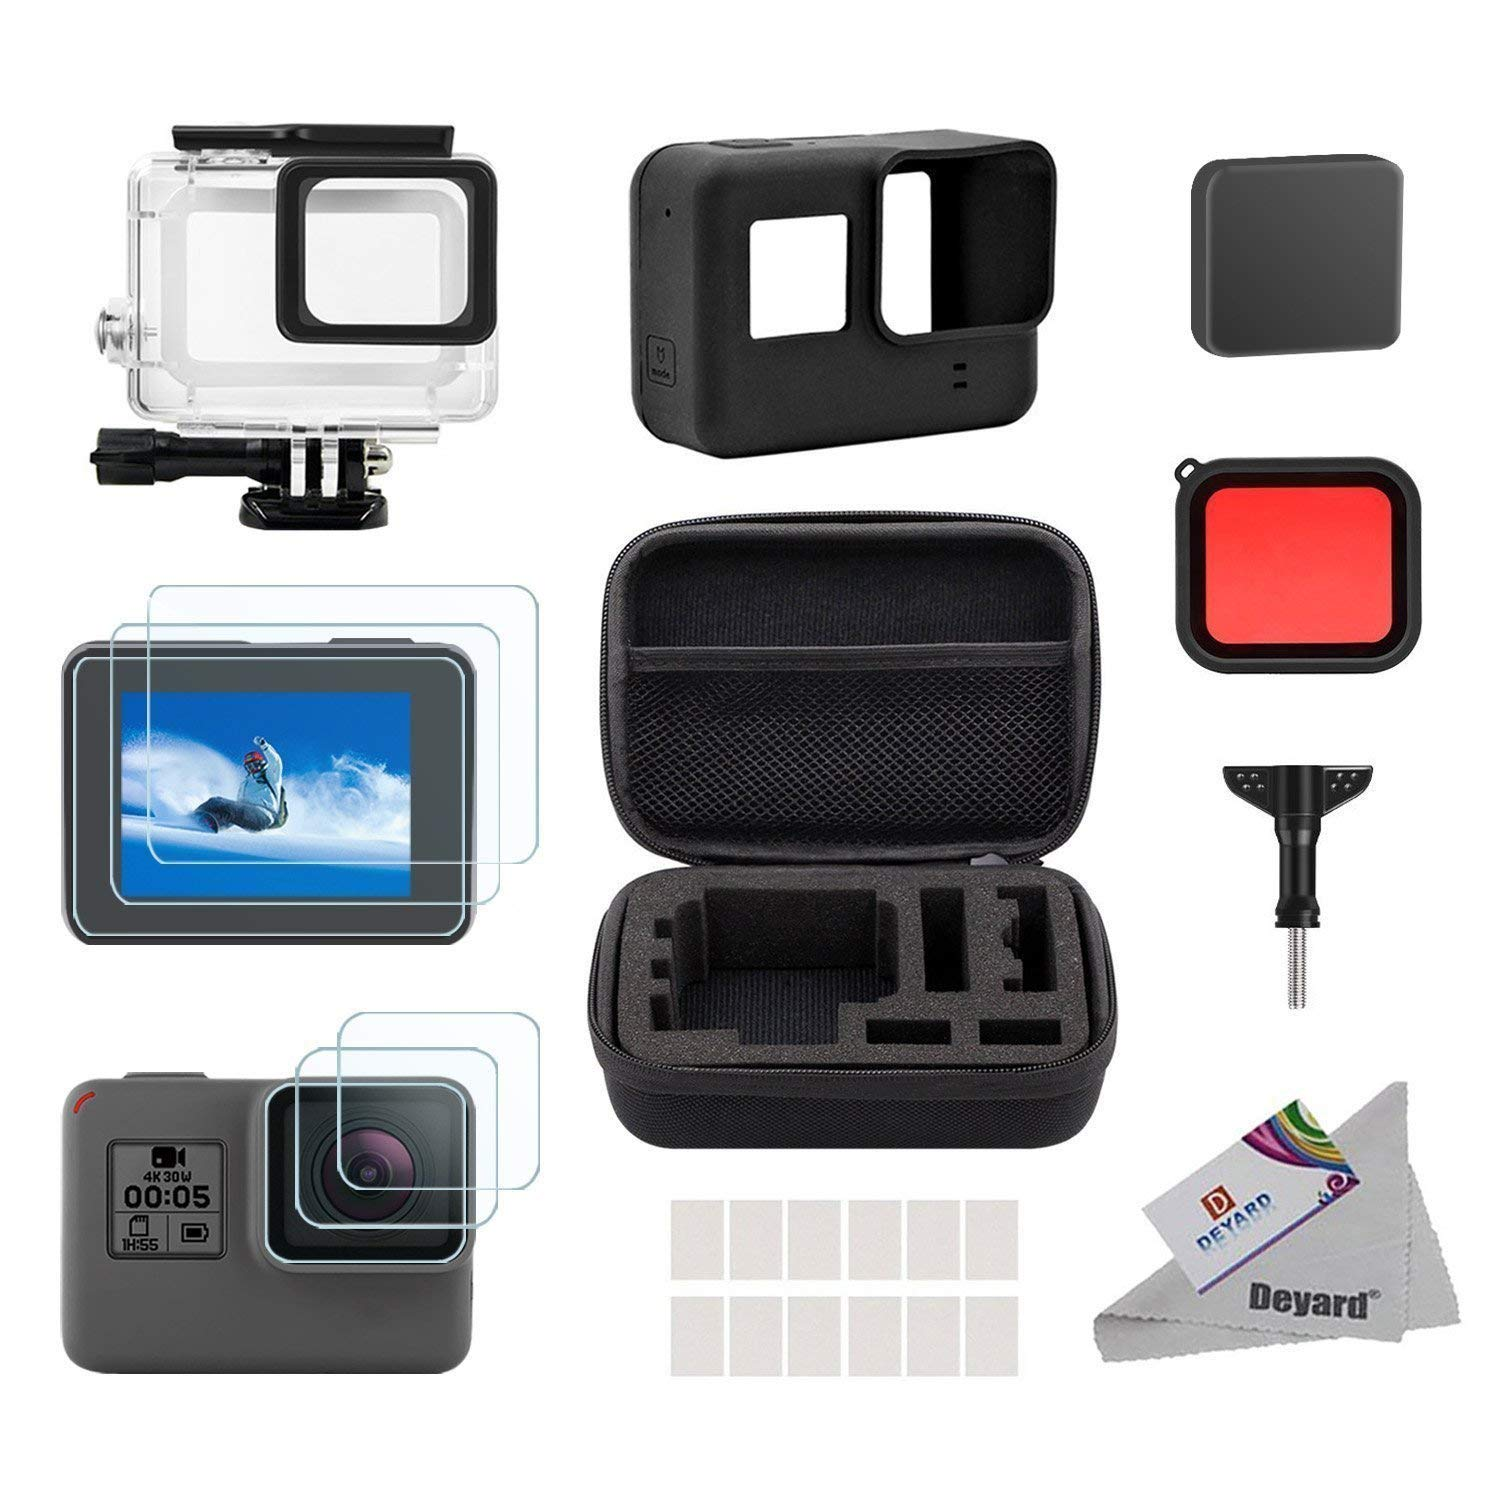 25 in 1 Accessory Kit for GoPro Hero (2018) GoPro Hero 6 Hero 5 with Shockproof Small Case Bundle&Silicone Rubber Lens Cap dz 42 protective lens cover silicone cap for gopro hero 2 white